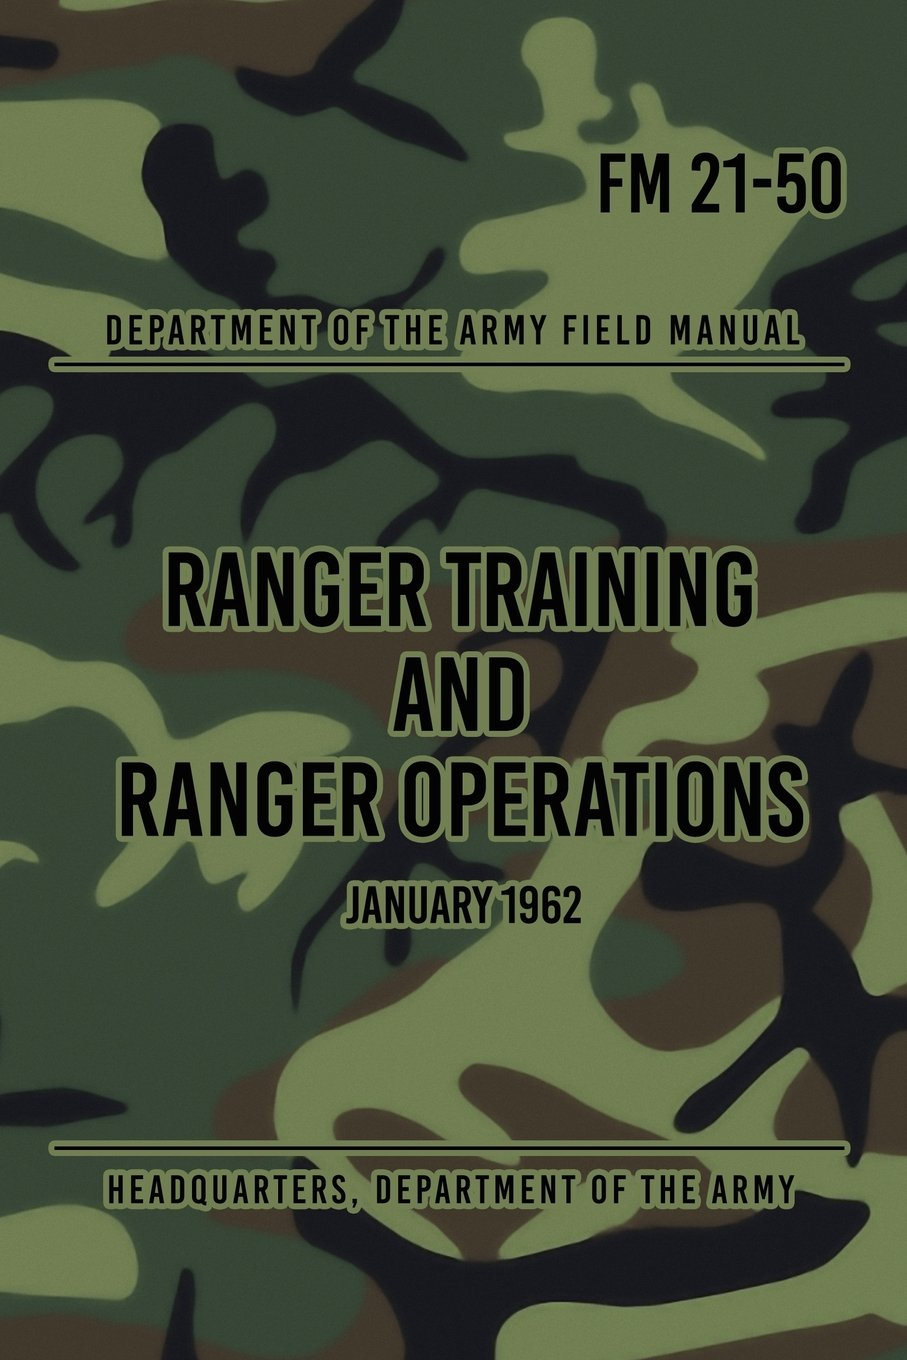 FM 21-50 Ranger Training and Ranger Operations: January 1962